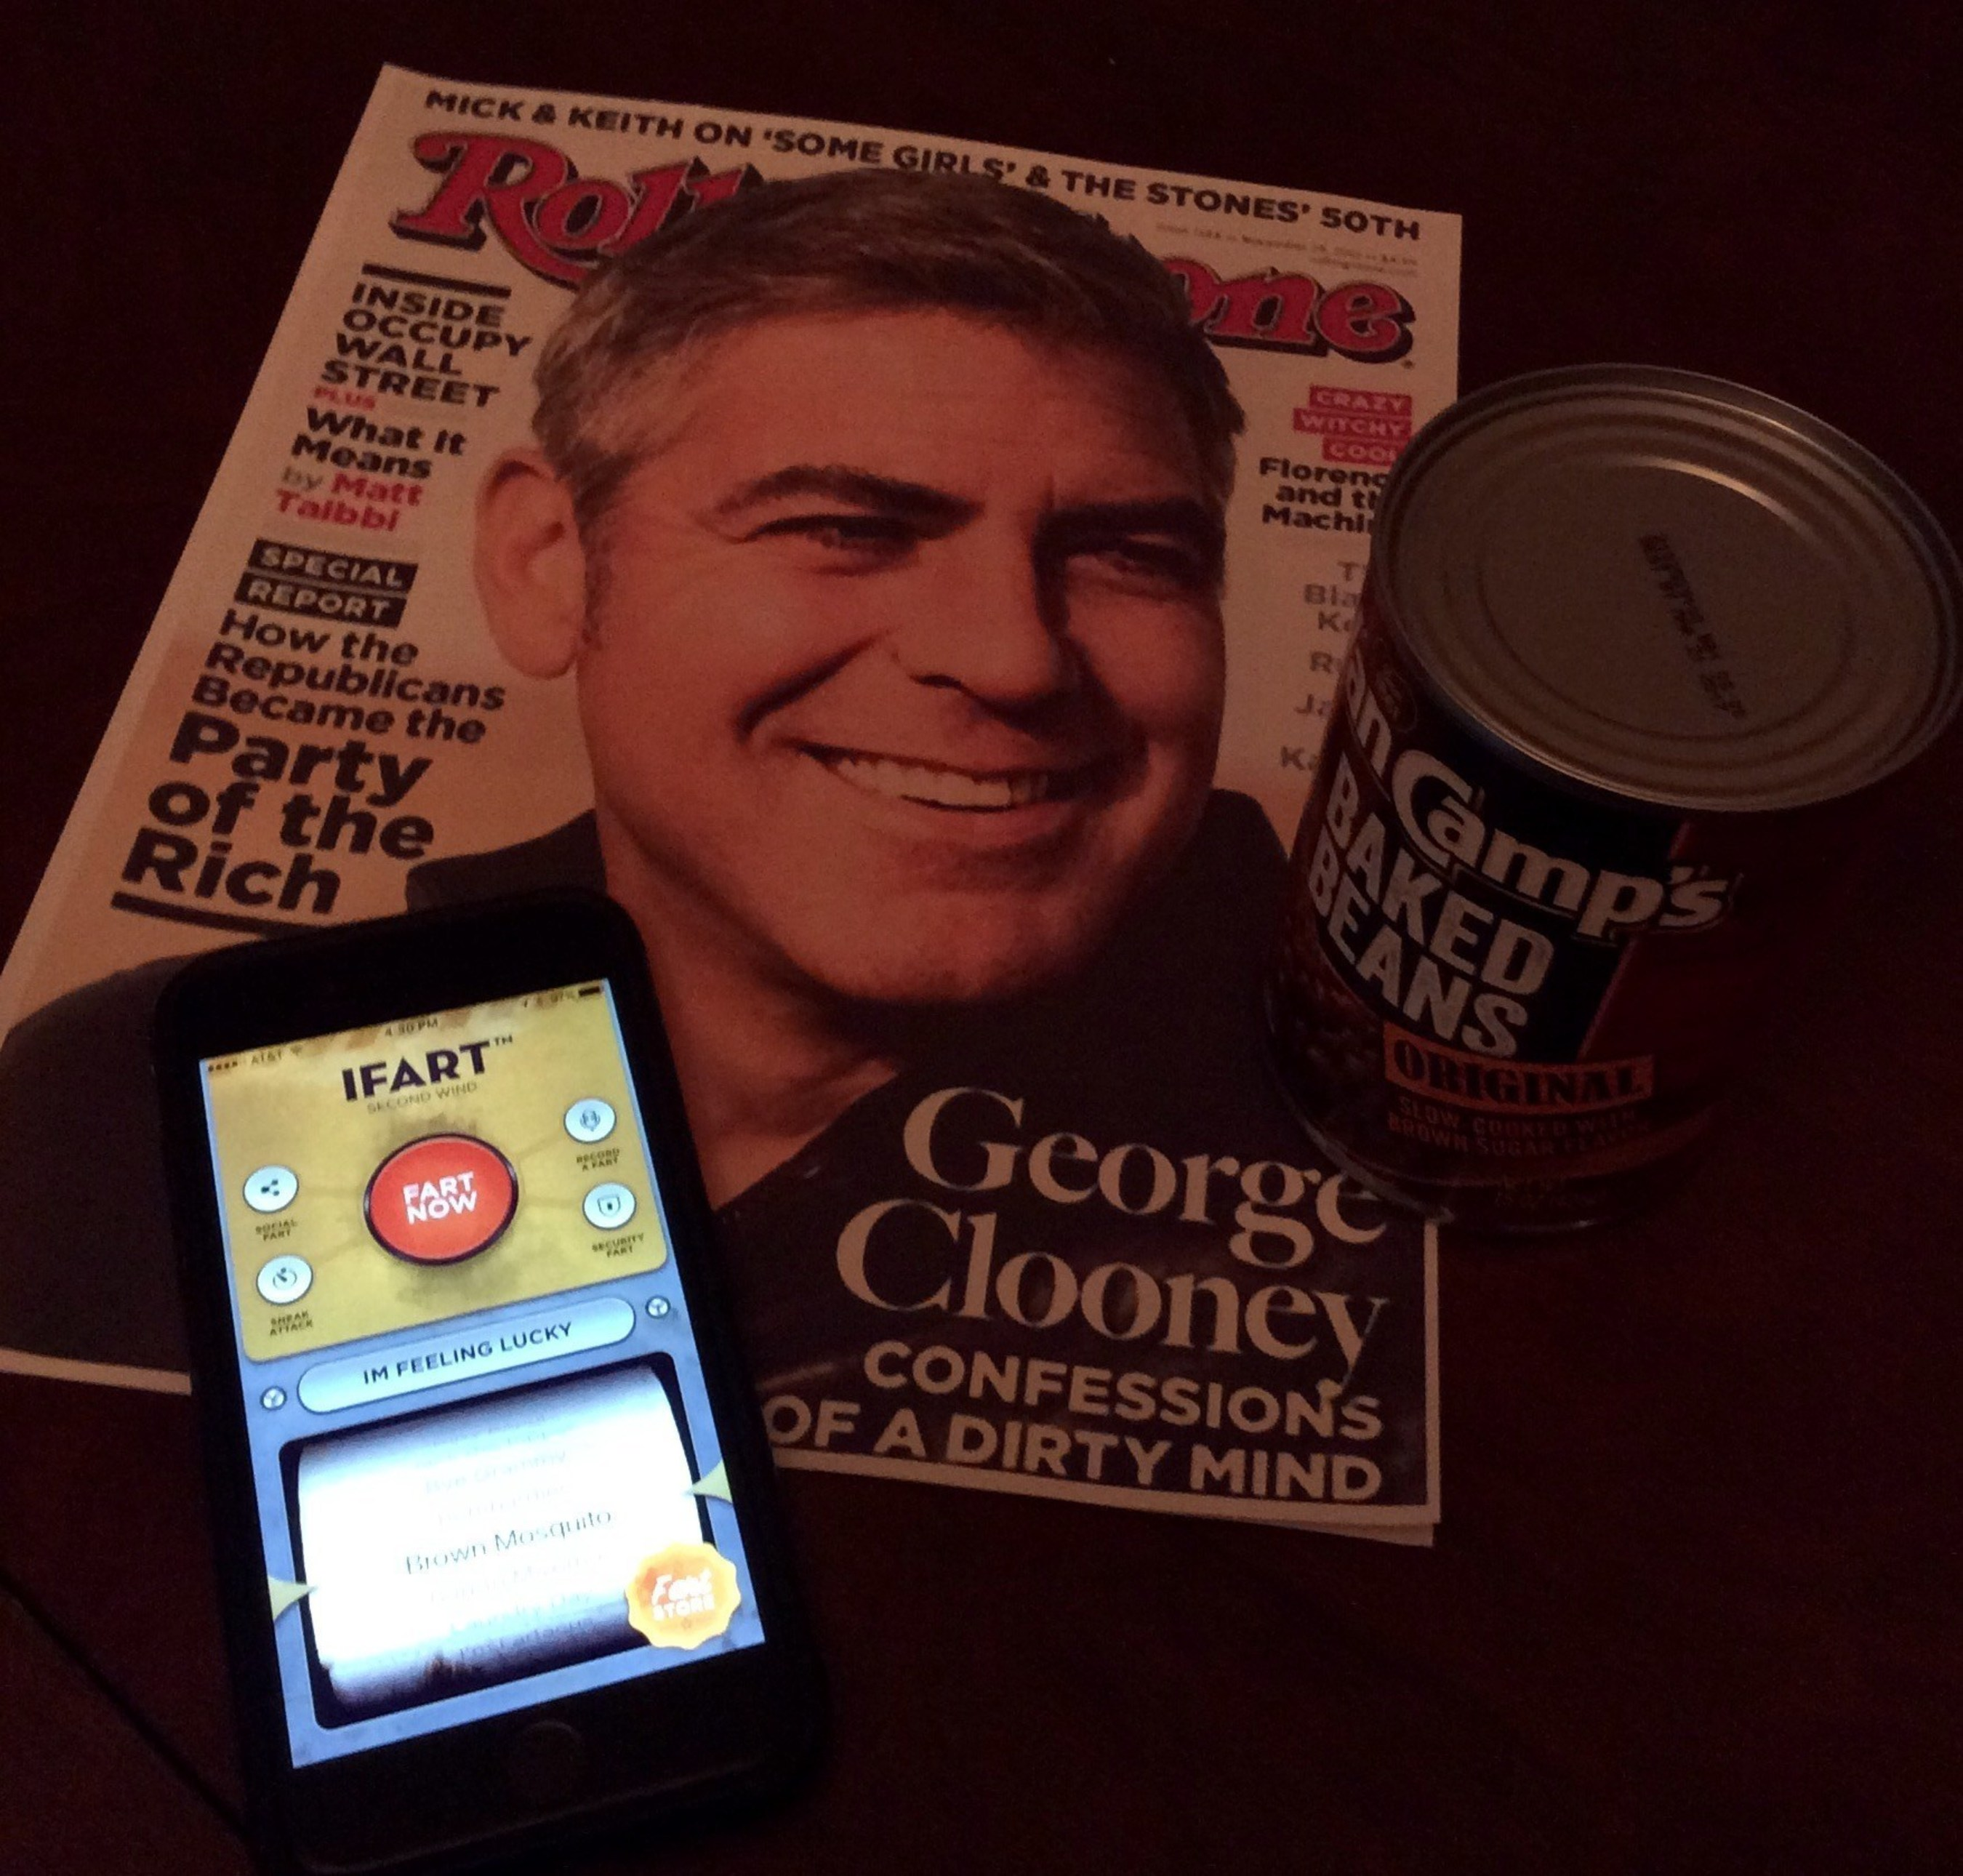 iPhone's Most Notorious app offers megastar George Clooney $100 for Original Fart Sounds